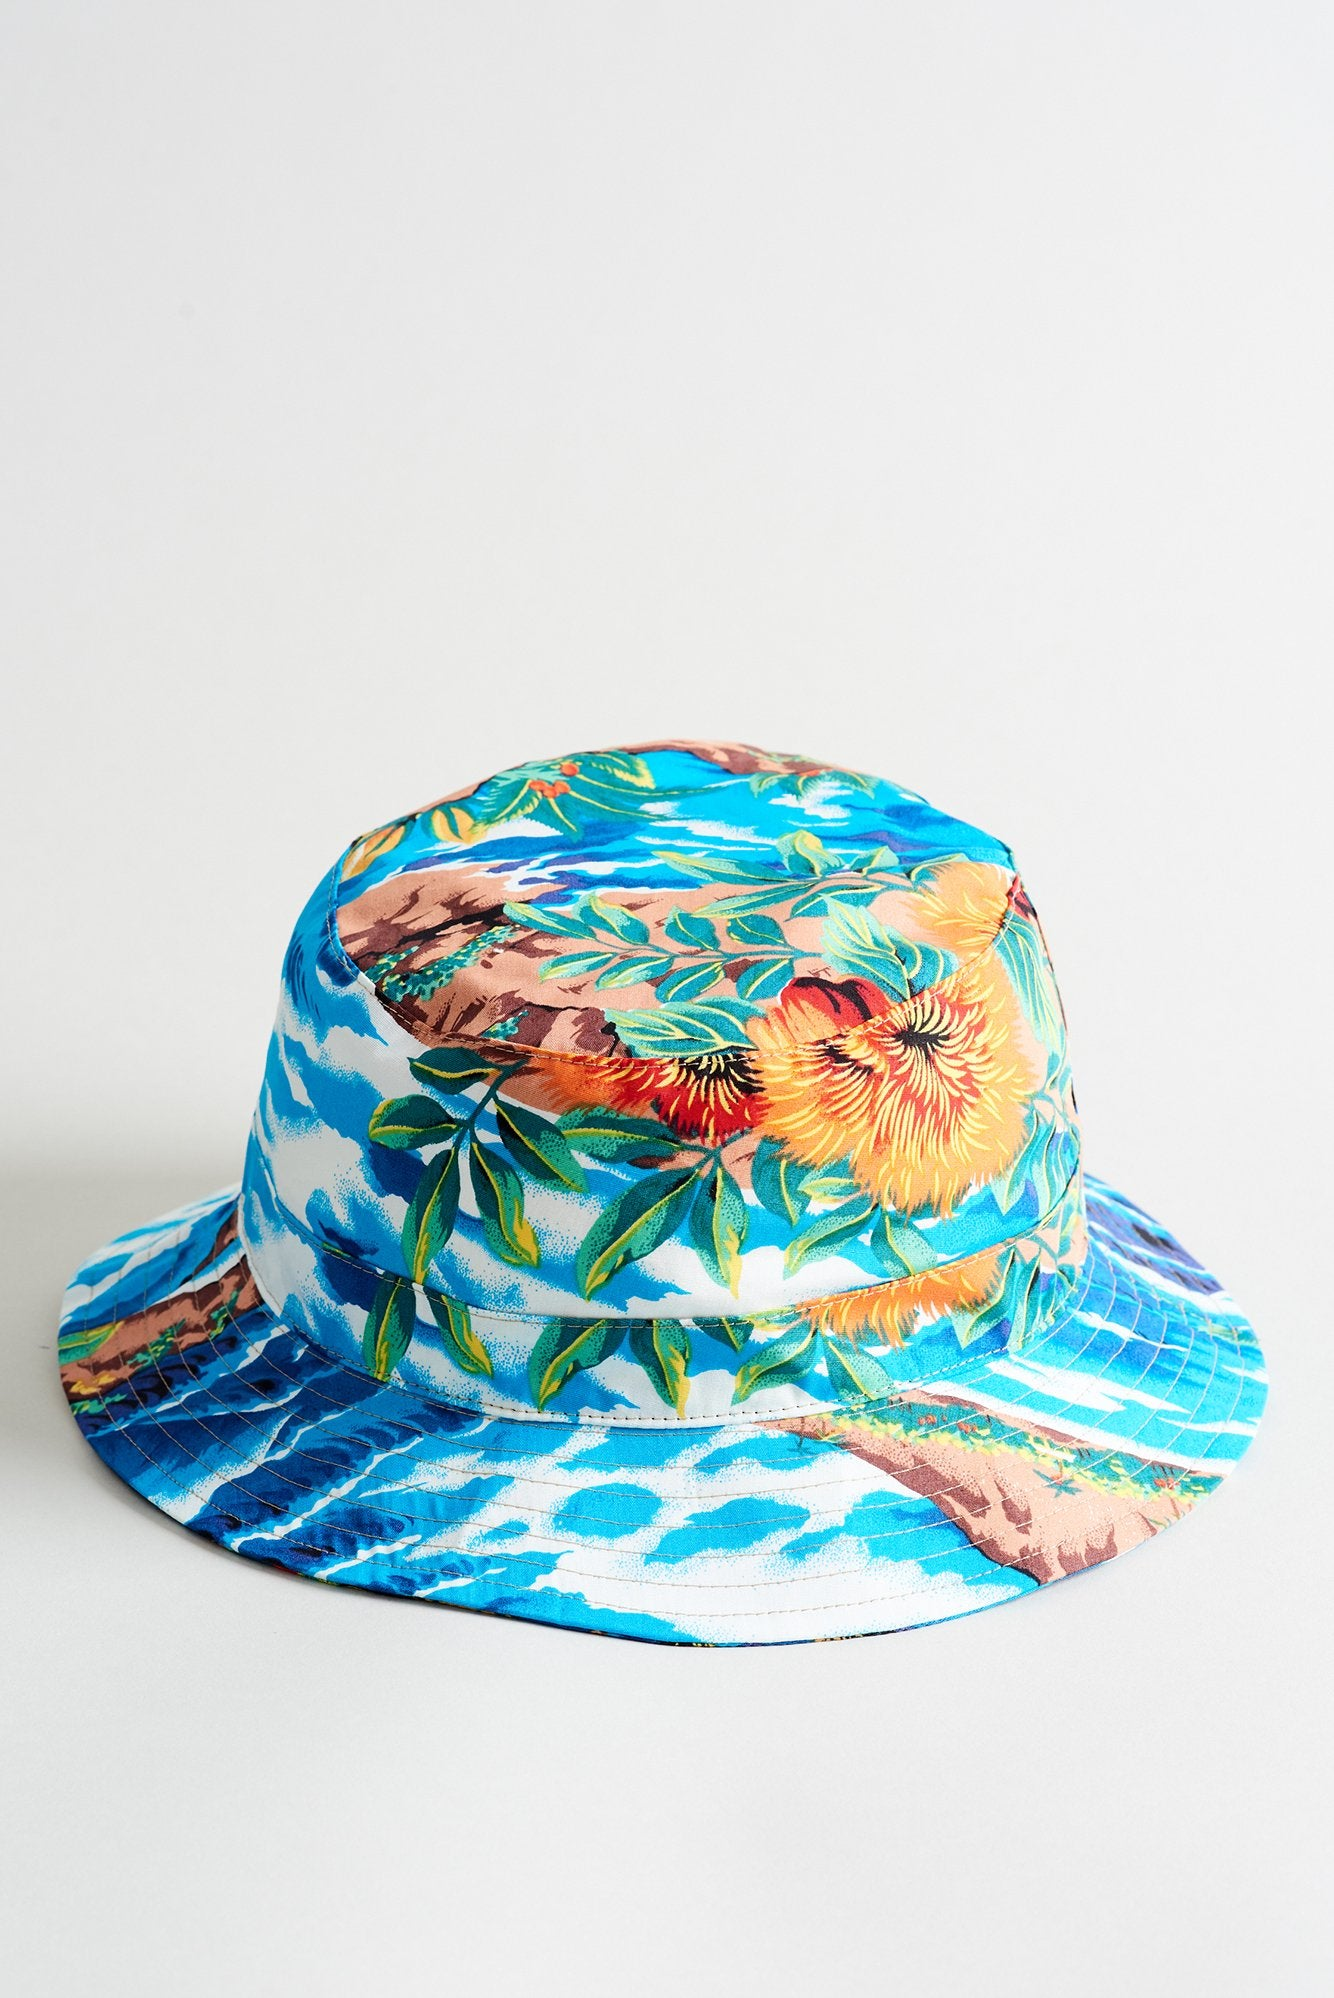 R13 Bucket Hat - Turquoise Wave